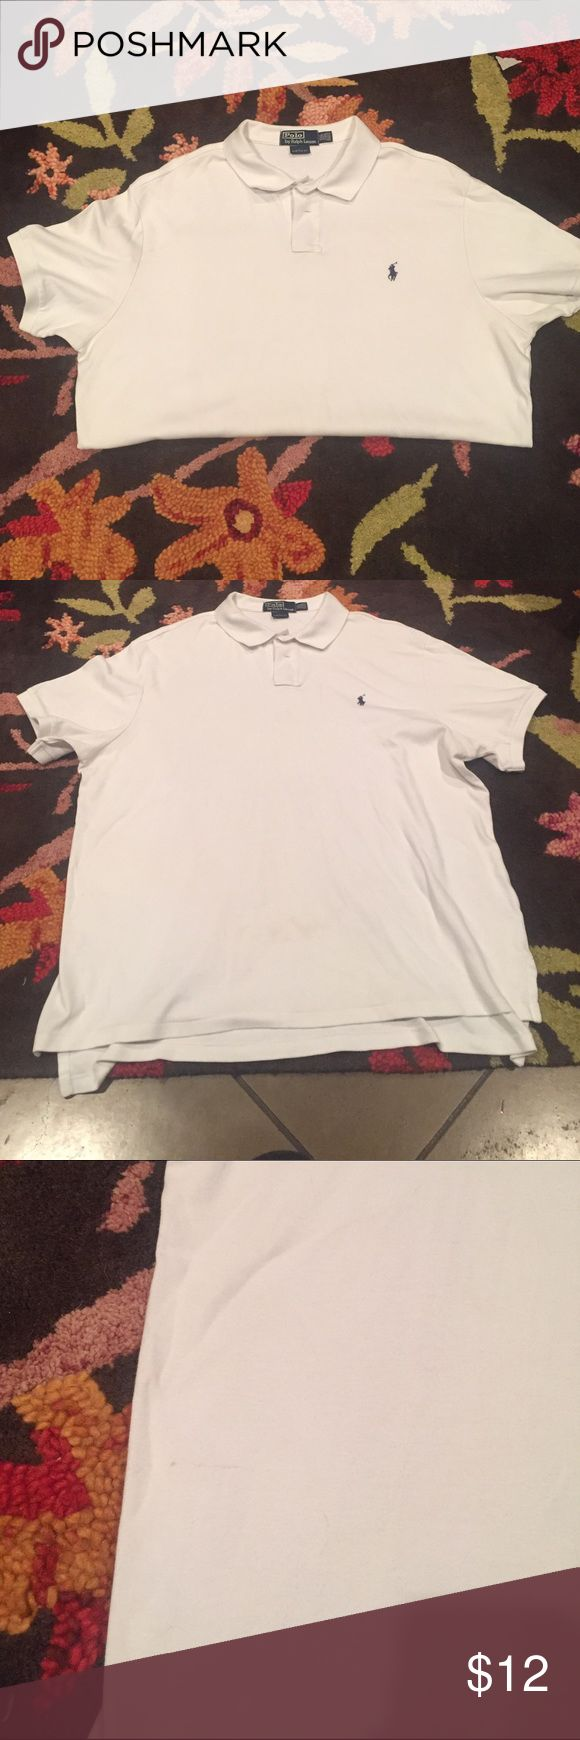 Texas Fraternity Shirt Sigma Chi Great condition !! Gildan Tops Tees - Short Sleeve